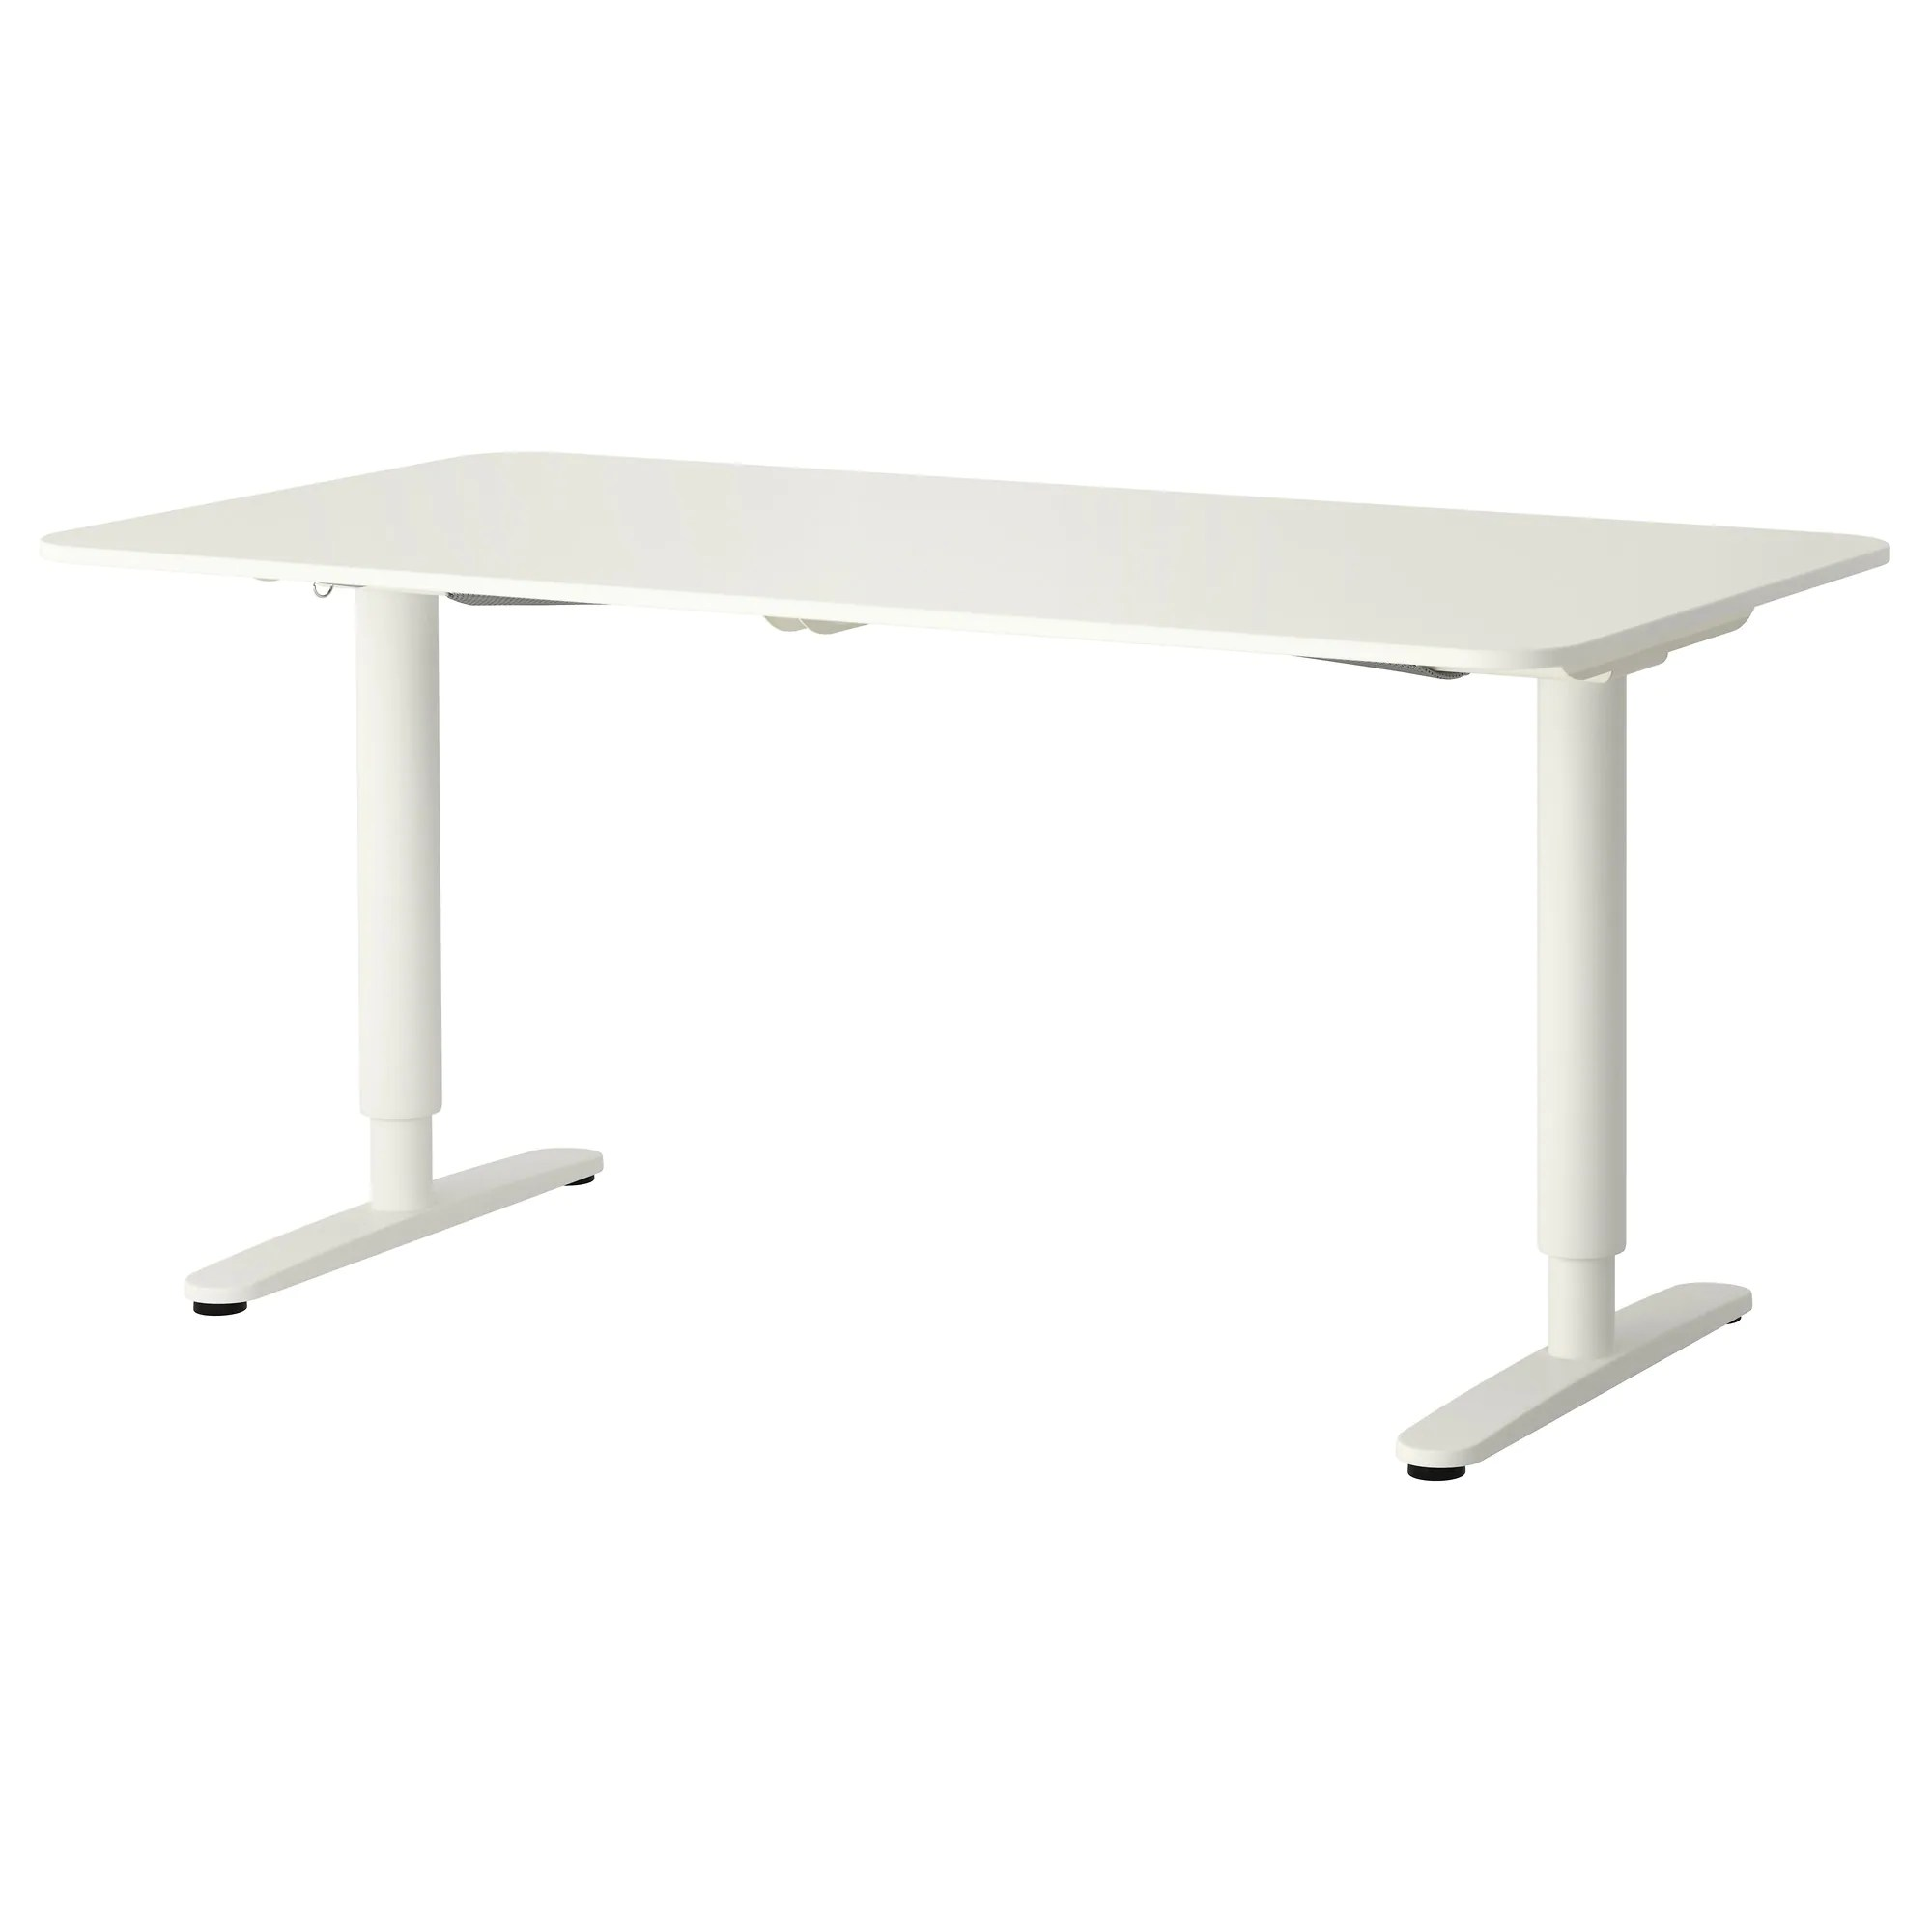 Simple Adjustable Height Desk Ikea Bekant Sitstand White Length To Decor